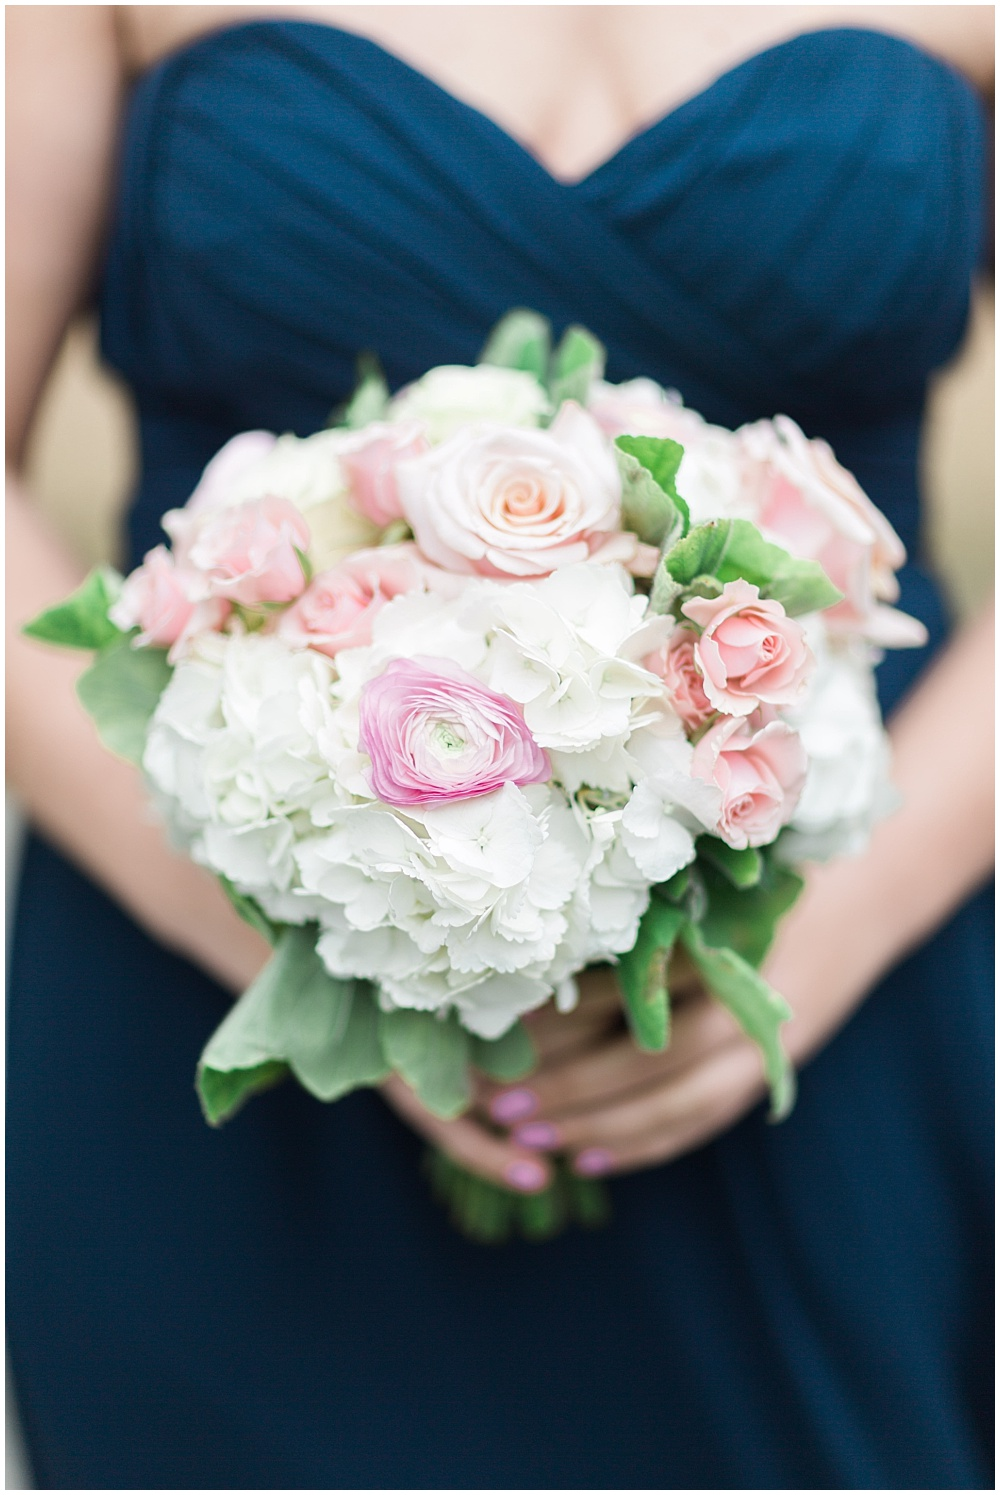 Soft Blush + White Wedding Bouquet | Downtown Indianapolis and CANAL 337 Wedding by Cory + Jackie Photography & Jessica Dum Wedding Coordination